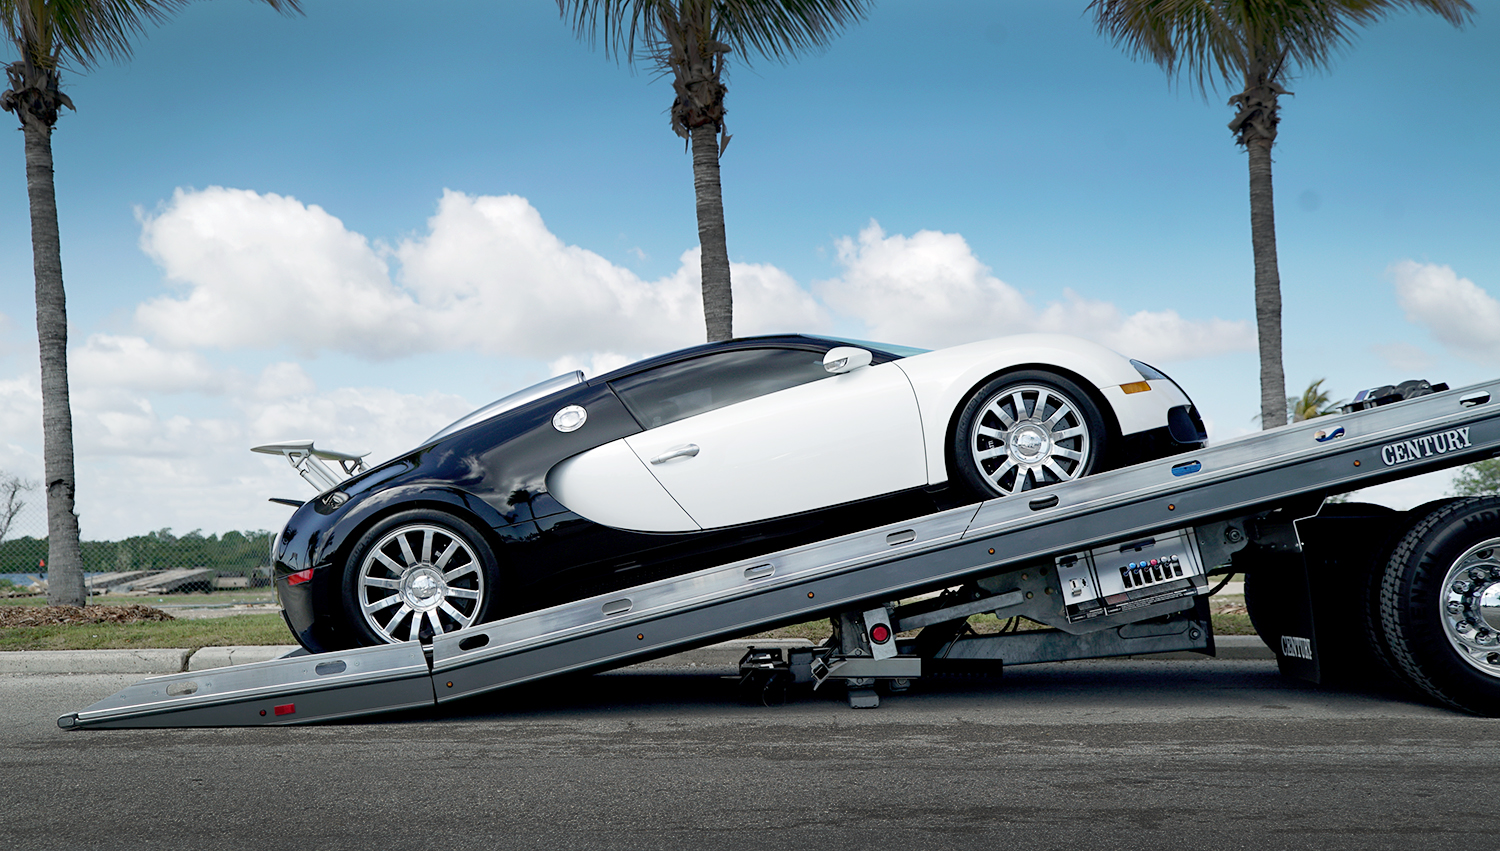 Car Carriers Conventional Century The Right Approach™